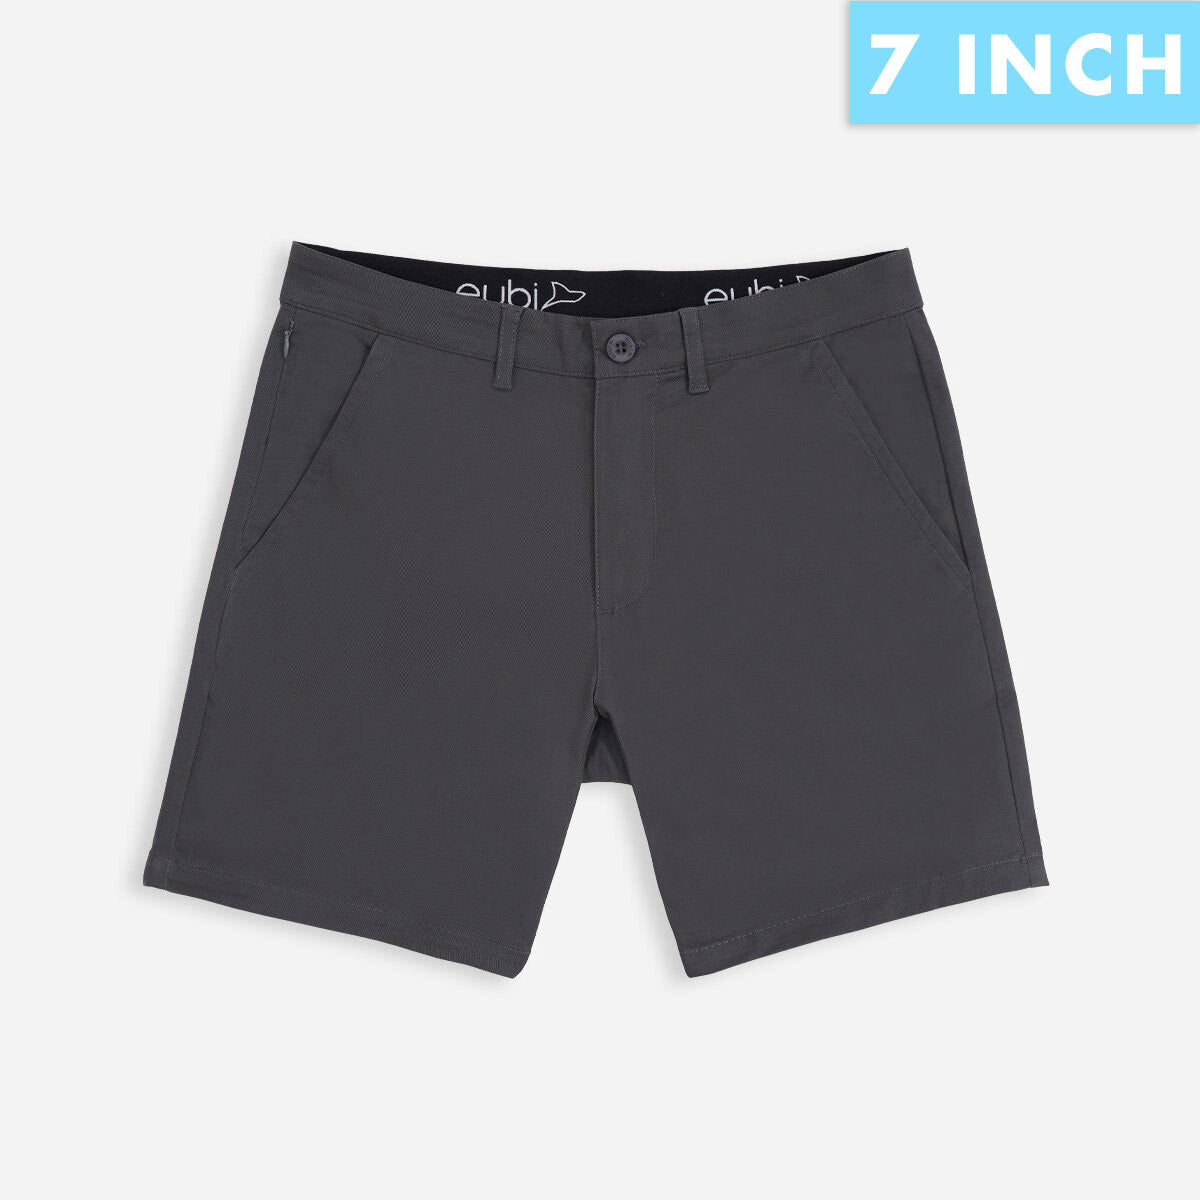 Charcoal Grey All Day Shorts 3.0 (Stretch)